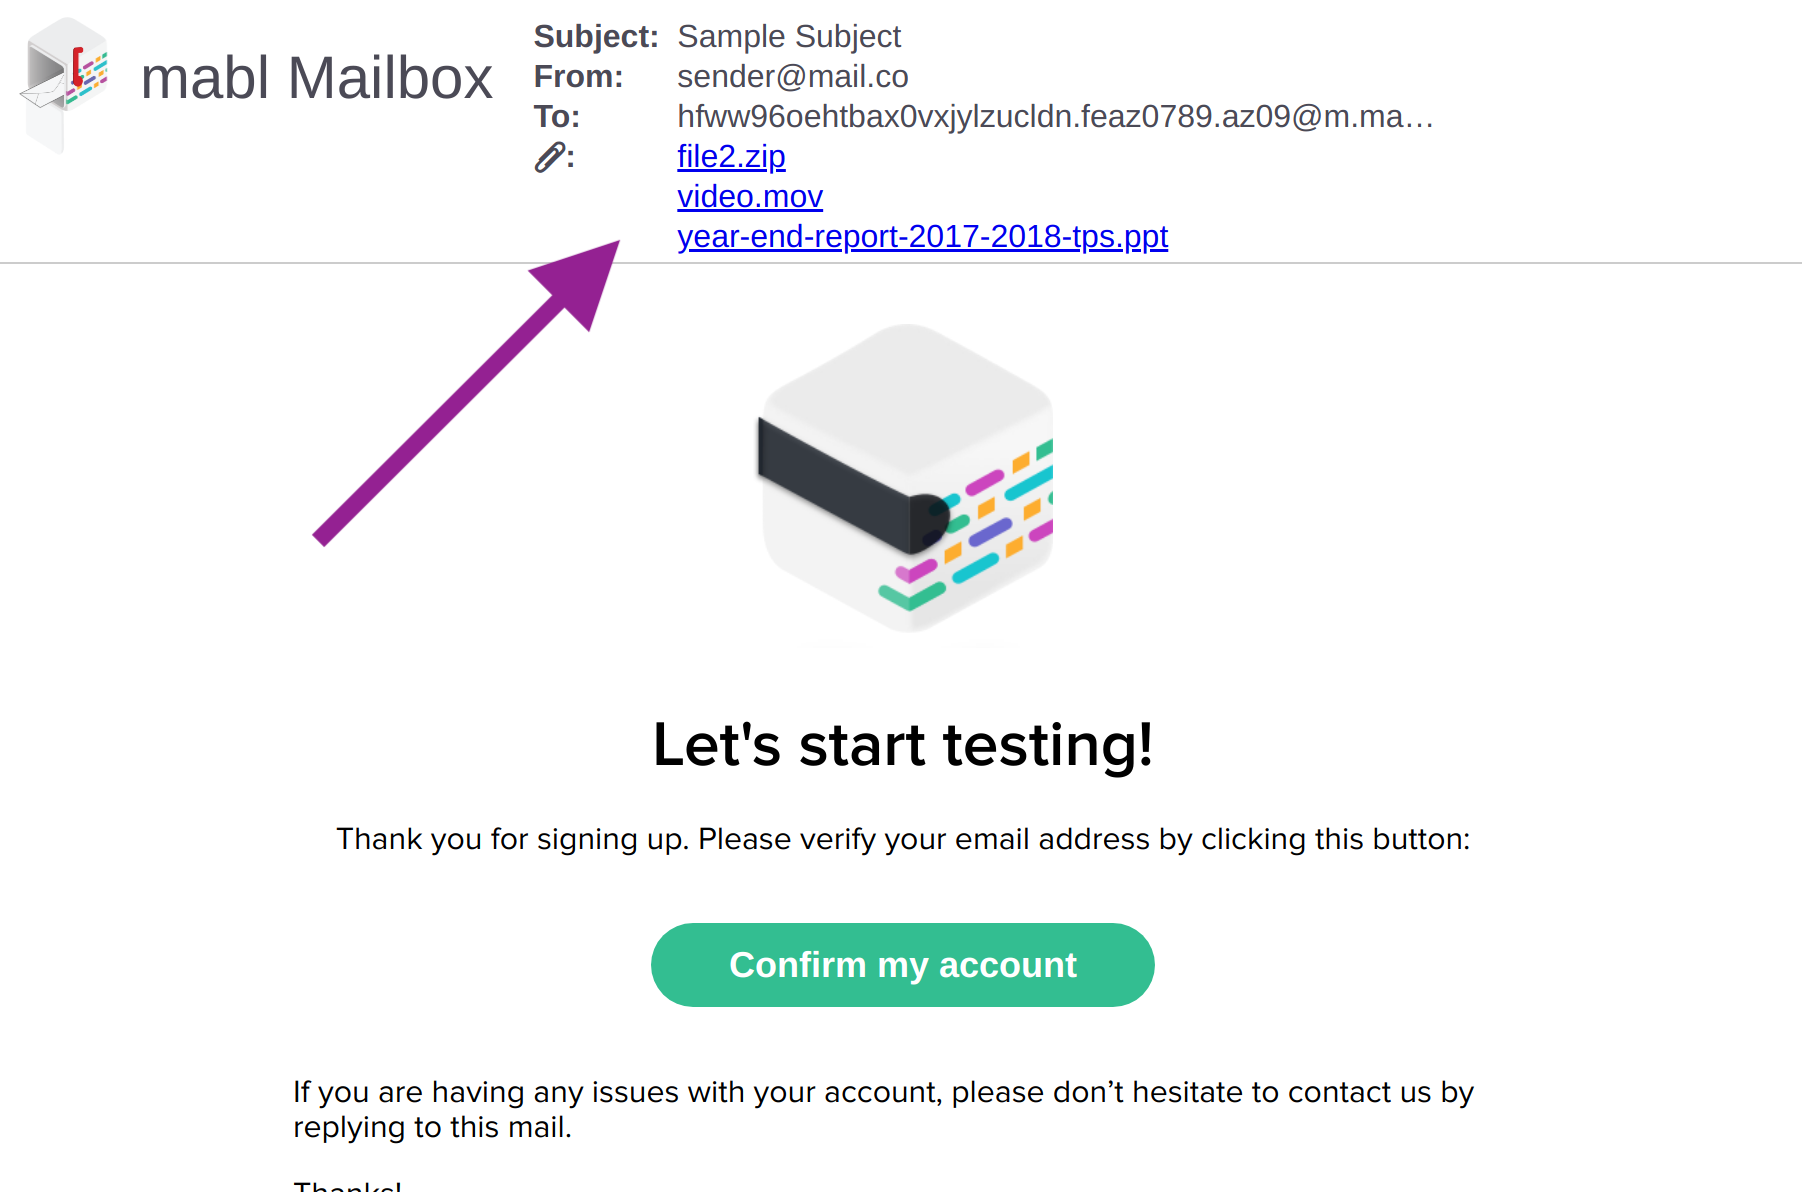 The location of attachments within a mabl Mailbox rendered email.